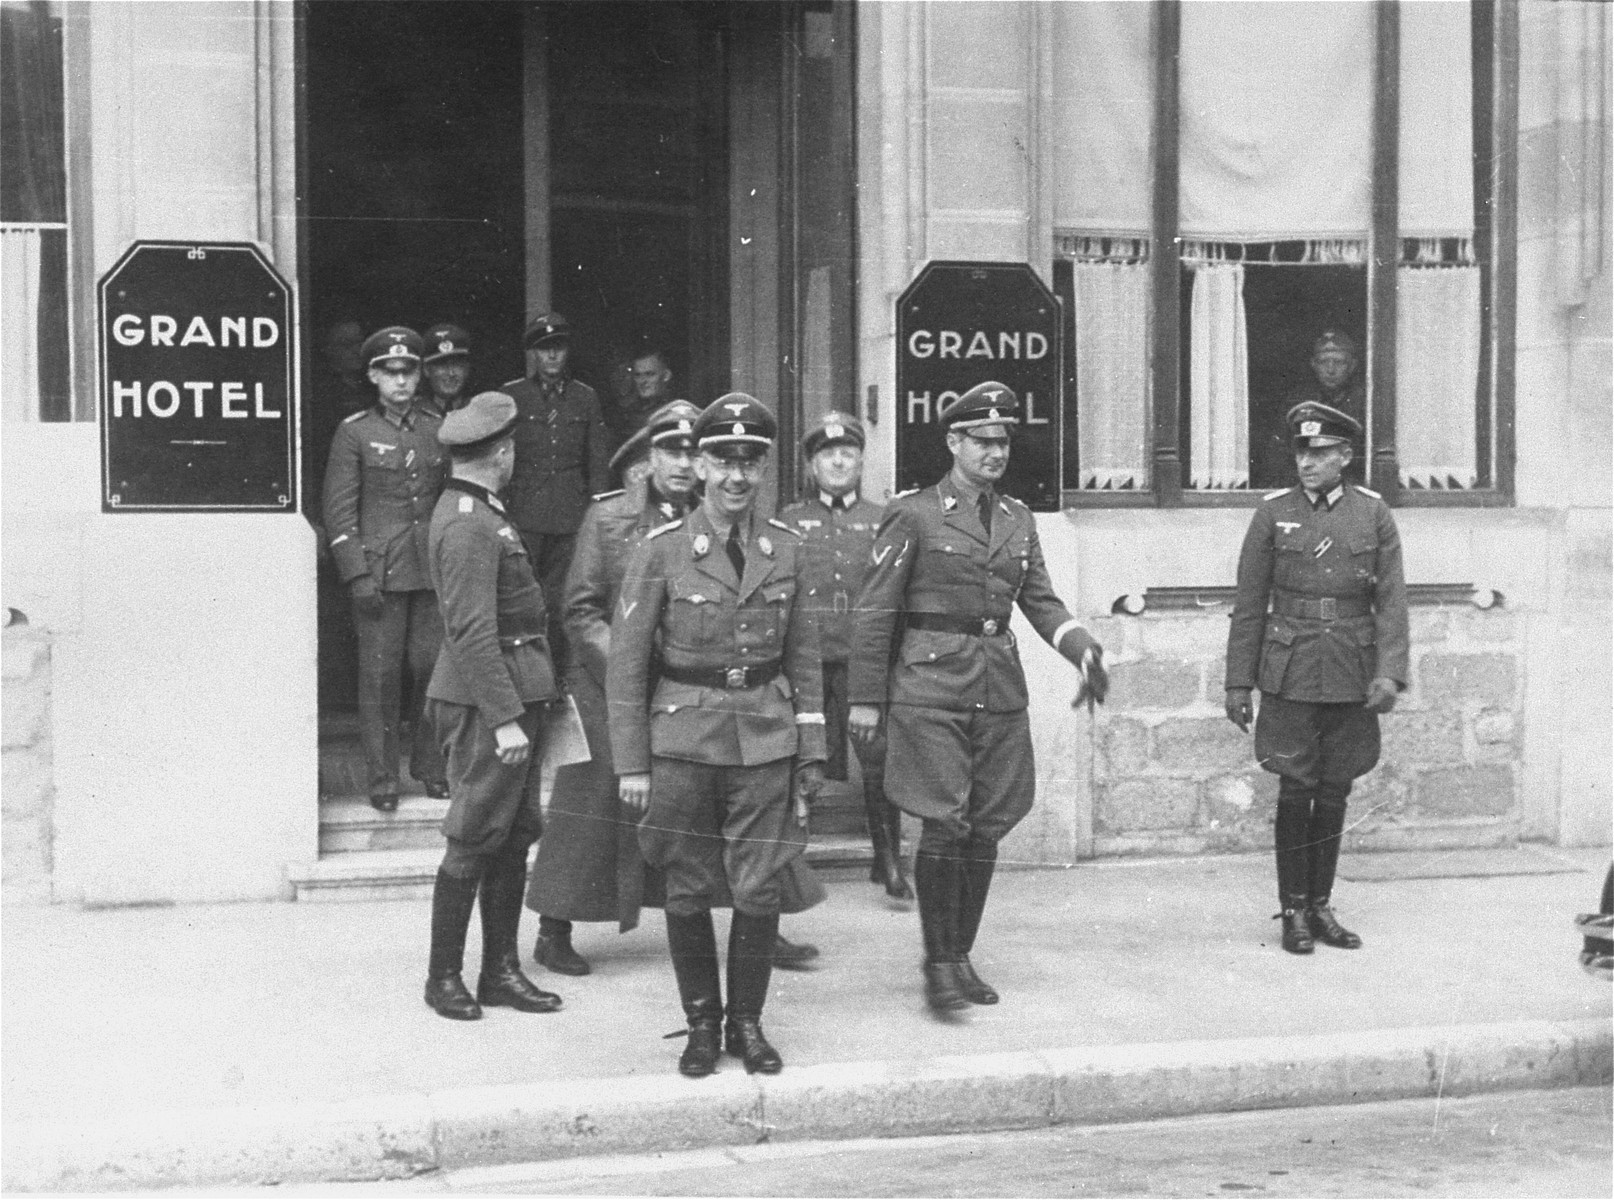 "Heinrich Himmler with other Nazi officials stand in front of the ""Grand Hotel"" in an unidentified location.   To the right of Himmler, and carrying gloves, is Karl Wolff.  The man behind Himmler is SS-Gruppenfuhrer Werner Lorenz."